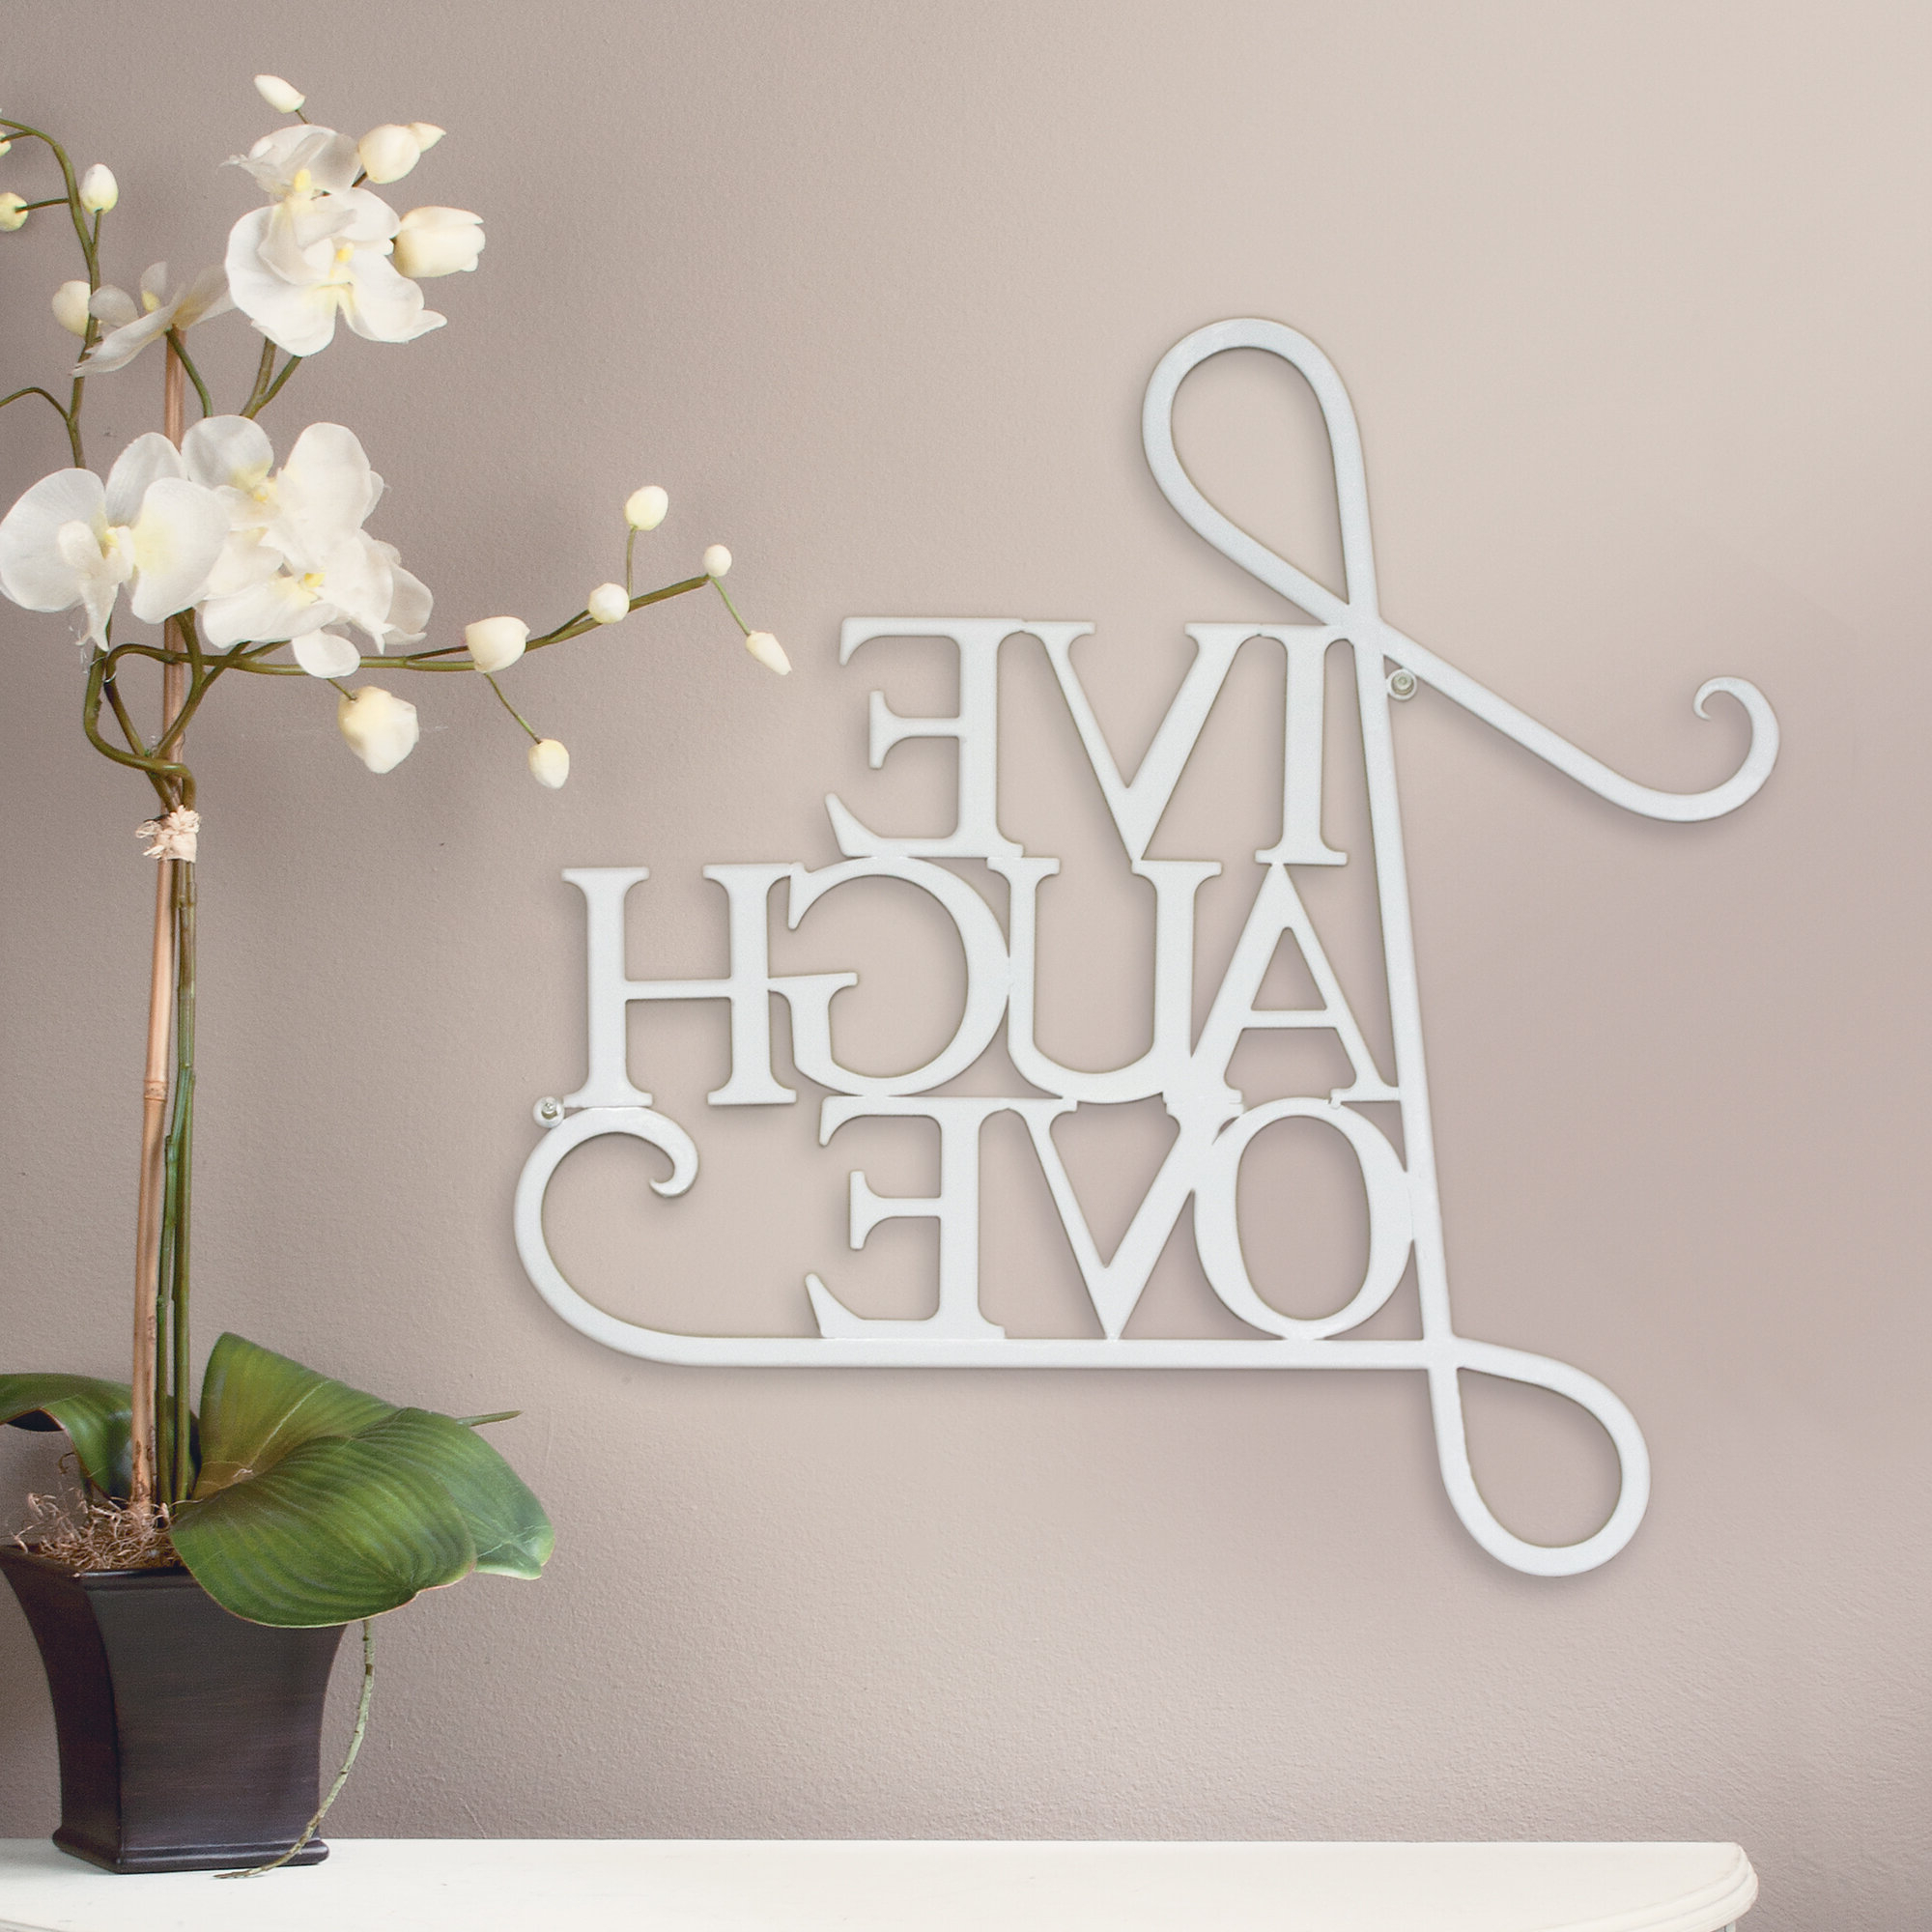 2019 Faith, Hope, Love Raised Sign Wall Decor By Winston Porter Intended For Winston Porter Live, Laugh, Love Antique Copper Wall Decor & Reviews (Gallery 7 of 20)